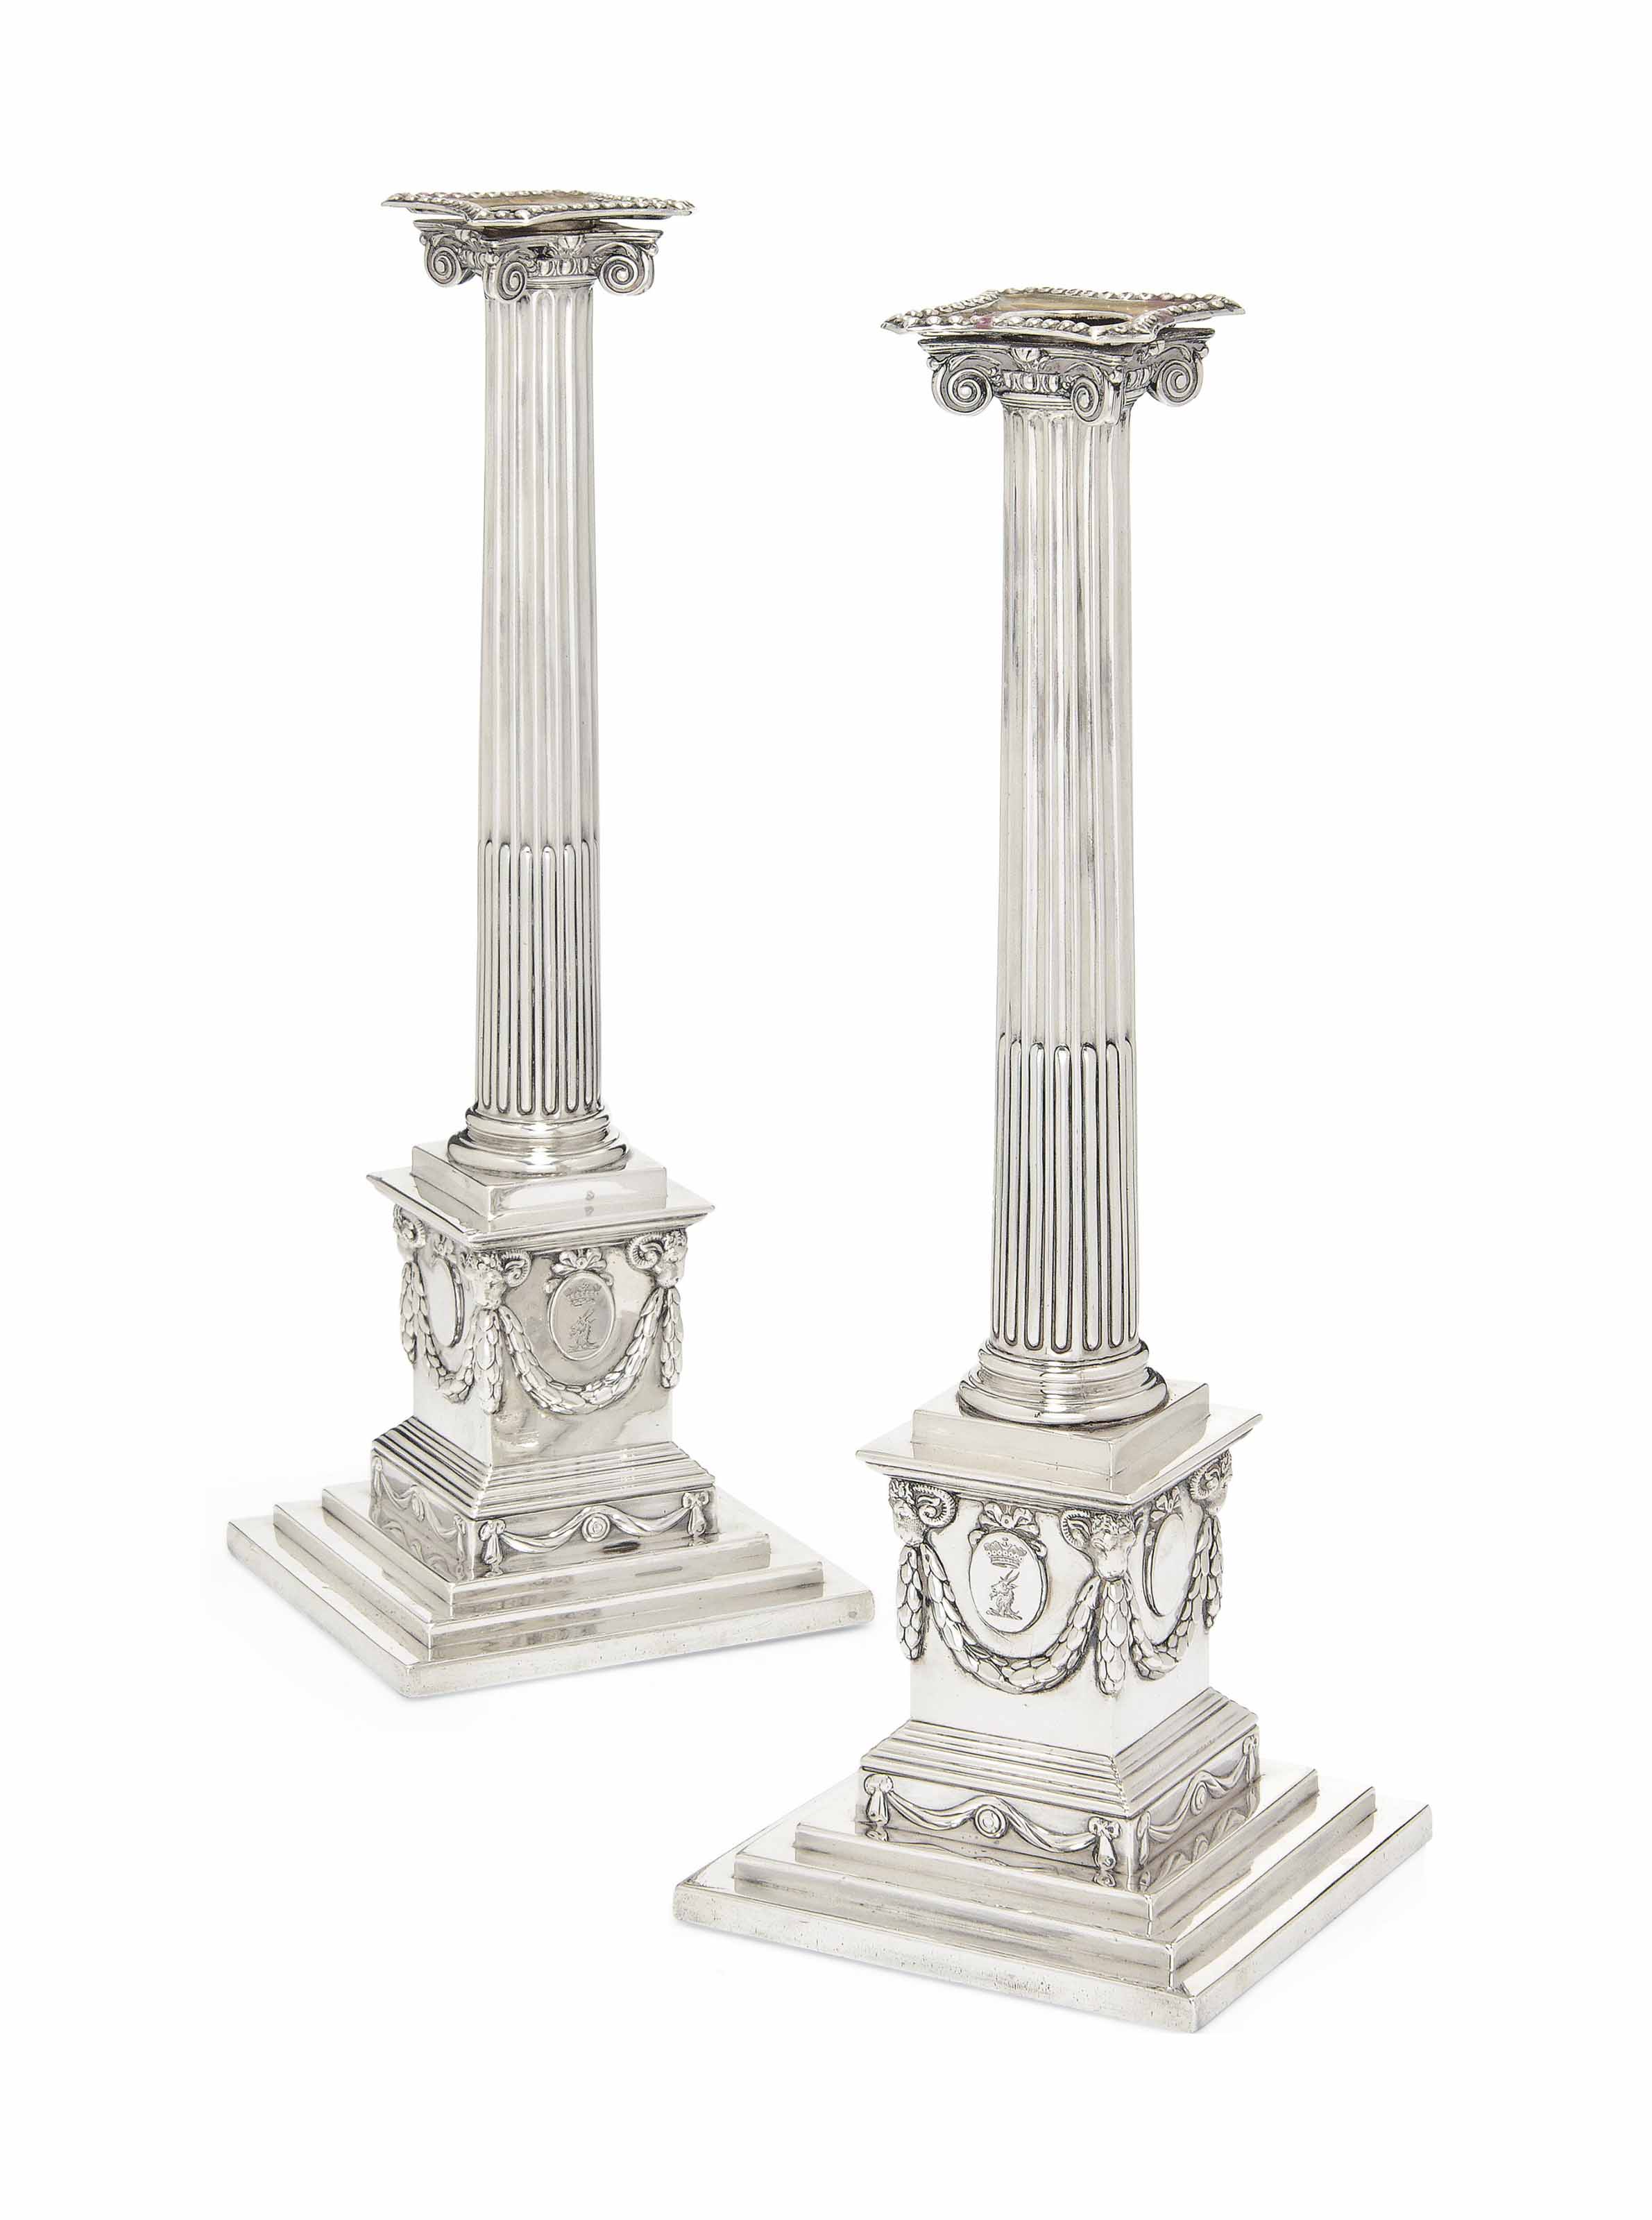 A PAIR OF GEORGE III IONIC COLUMN SILVER CANDLESTICKS